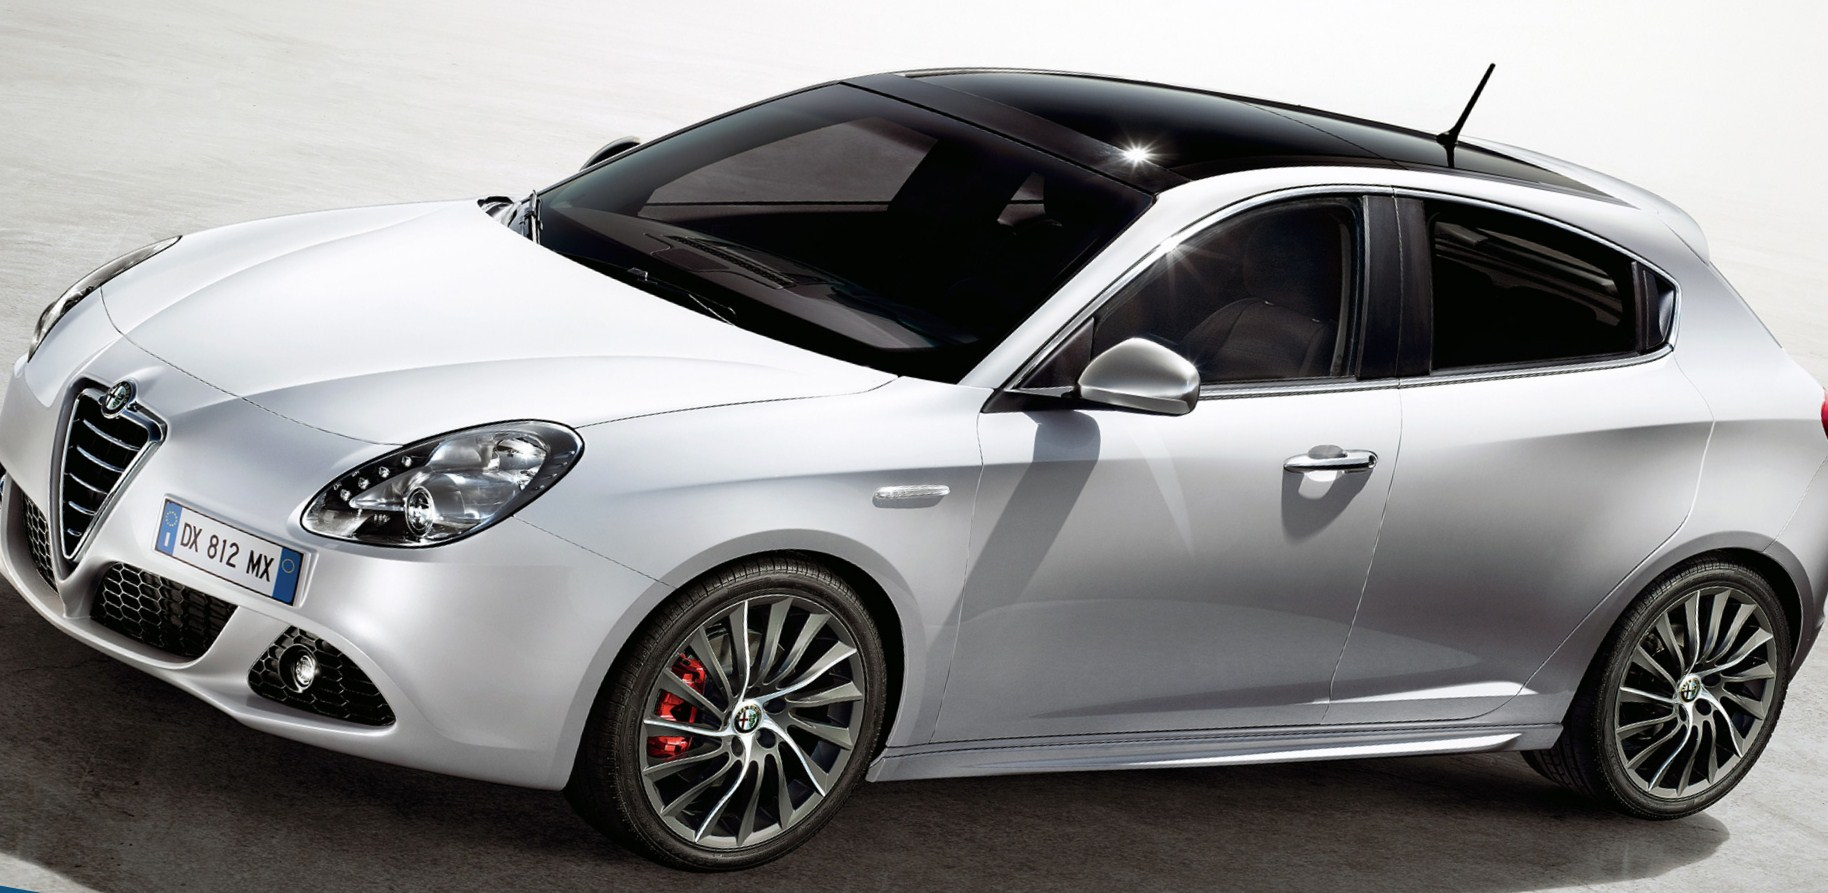 2013 alfa romeo giulietta partsopen. Black Bedroom Furniture Sets. Home Design Ideas